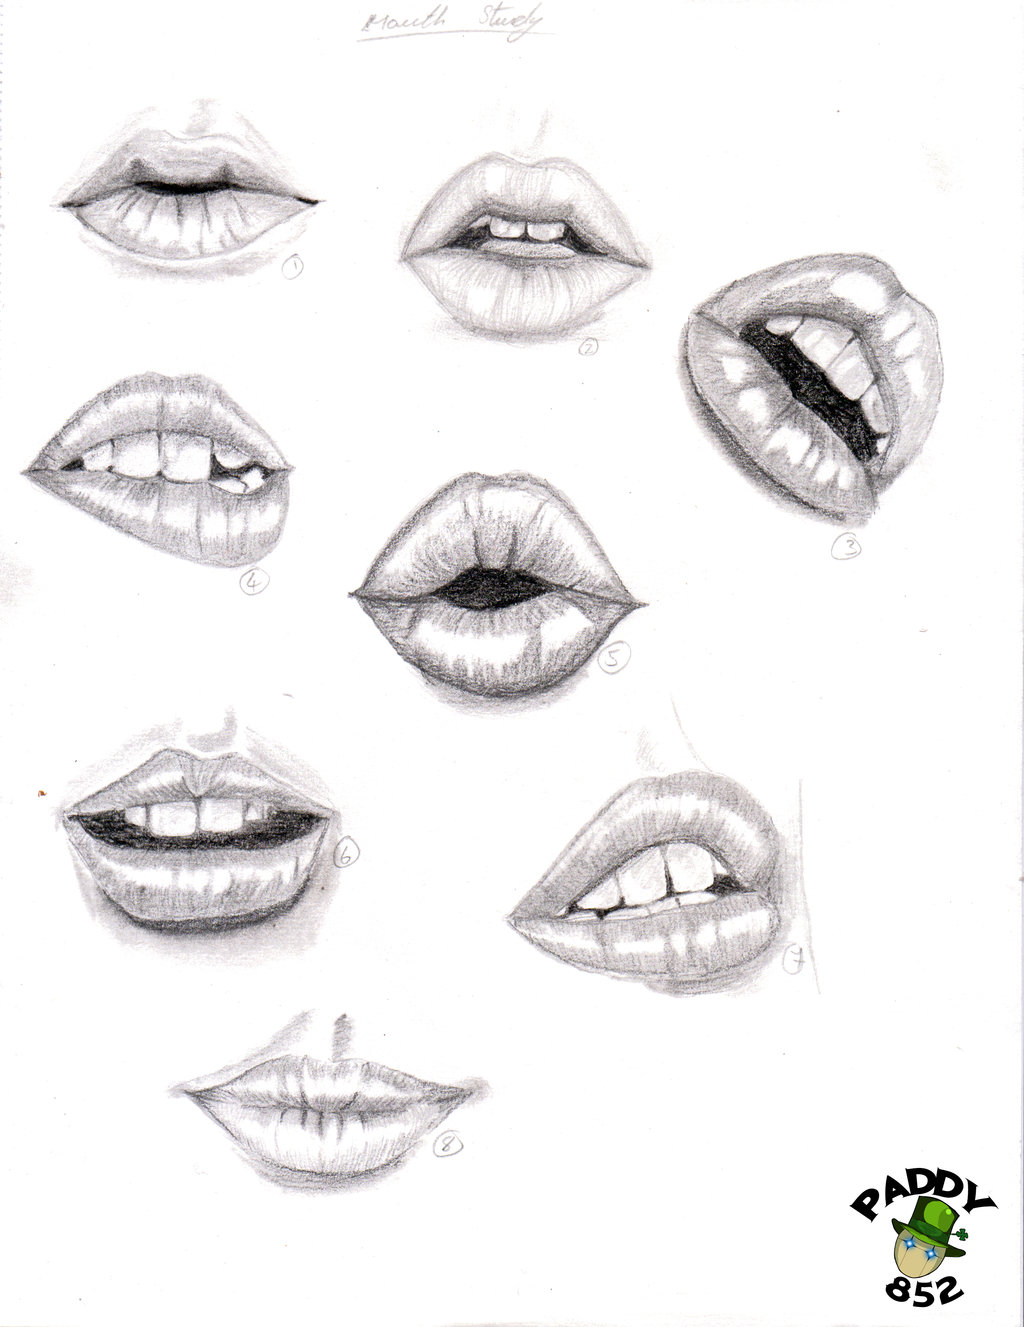 Drawn smile lip Study drawings lips by drawings